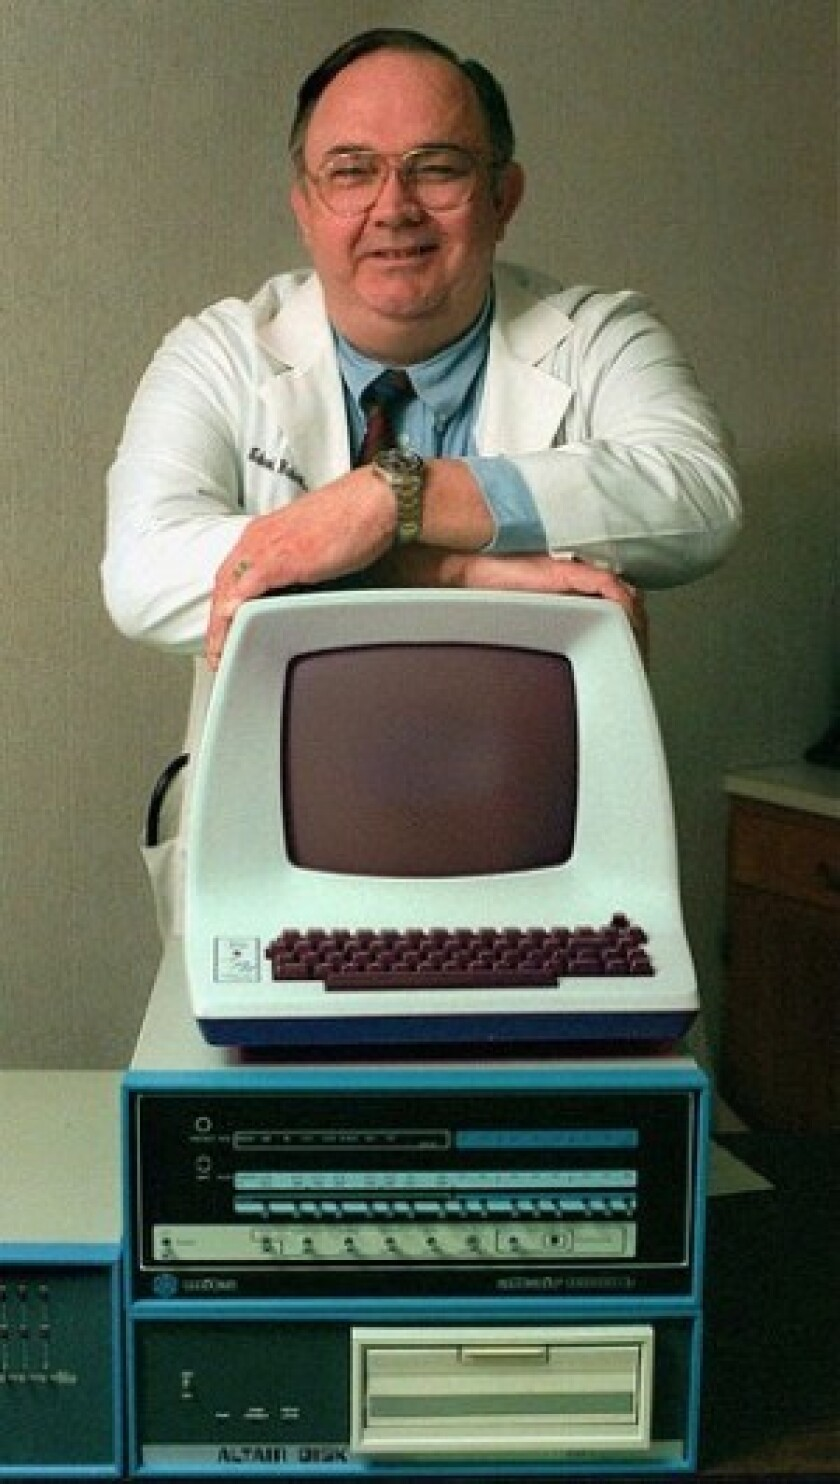 Henry Edward Roberts designed the Altair 8800. After selling his firm, he became a physician.